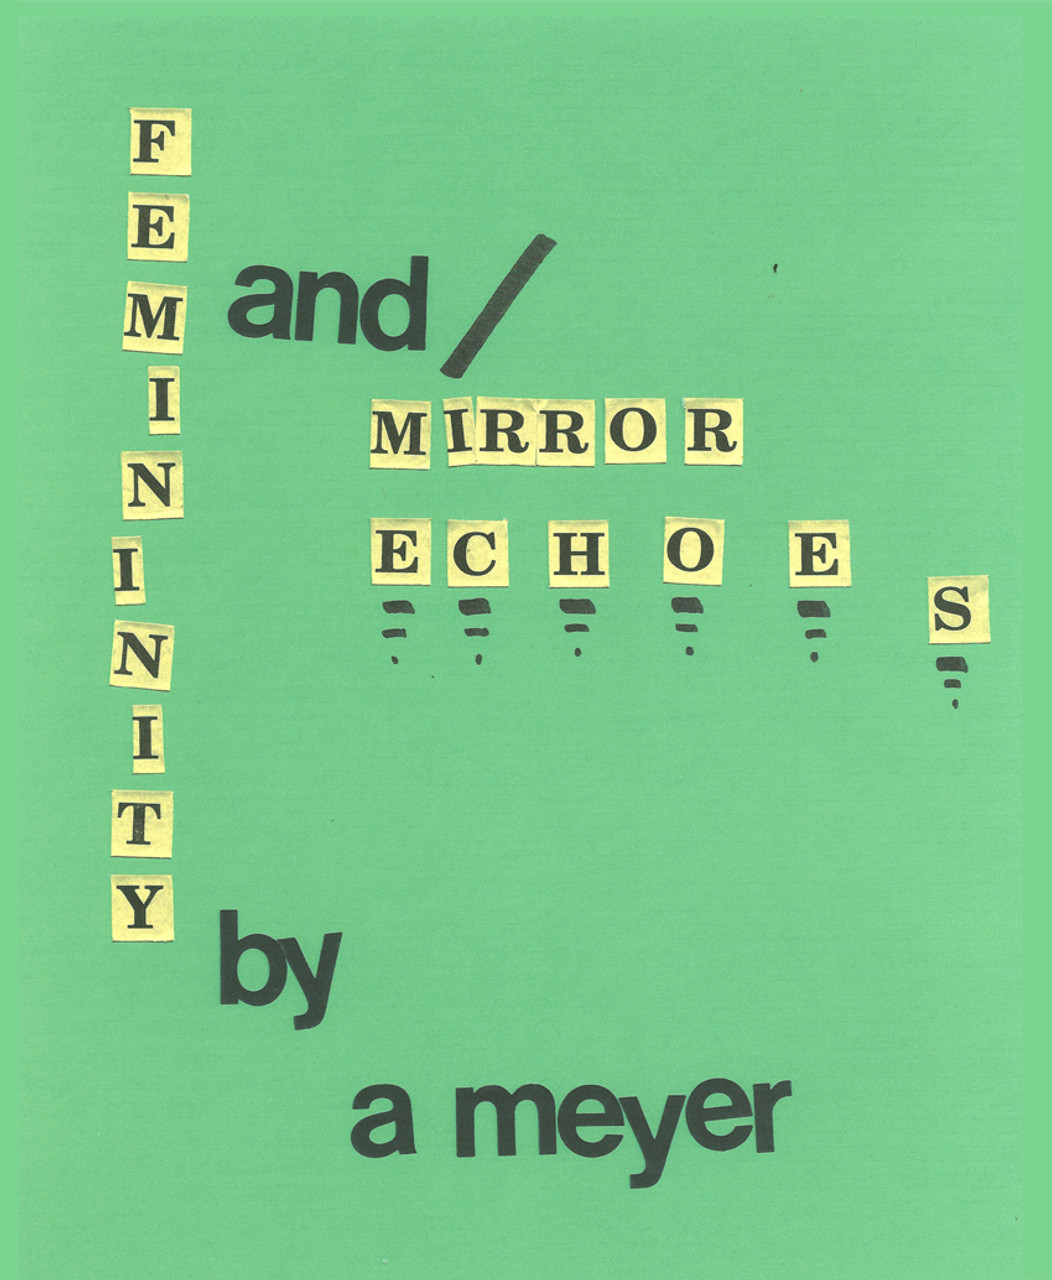 Femininity and / Mirror Echoes